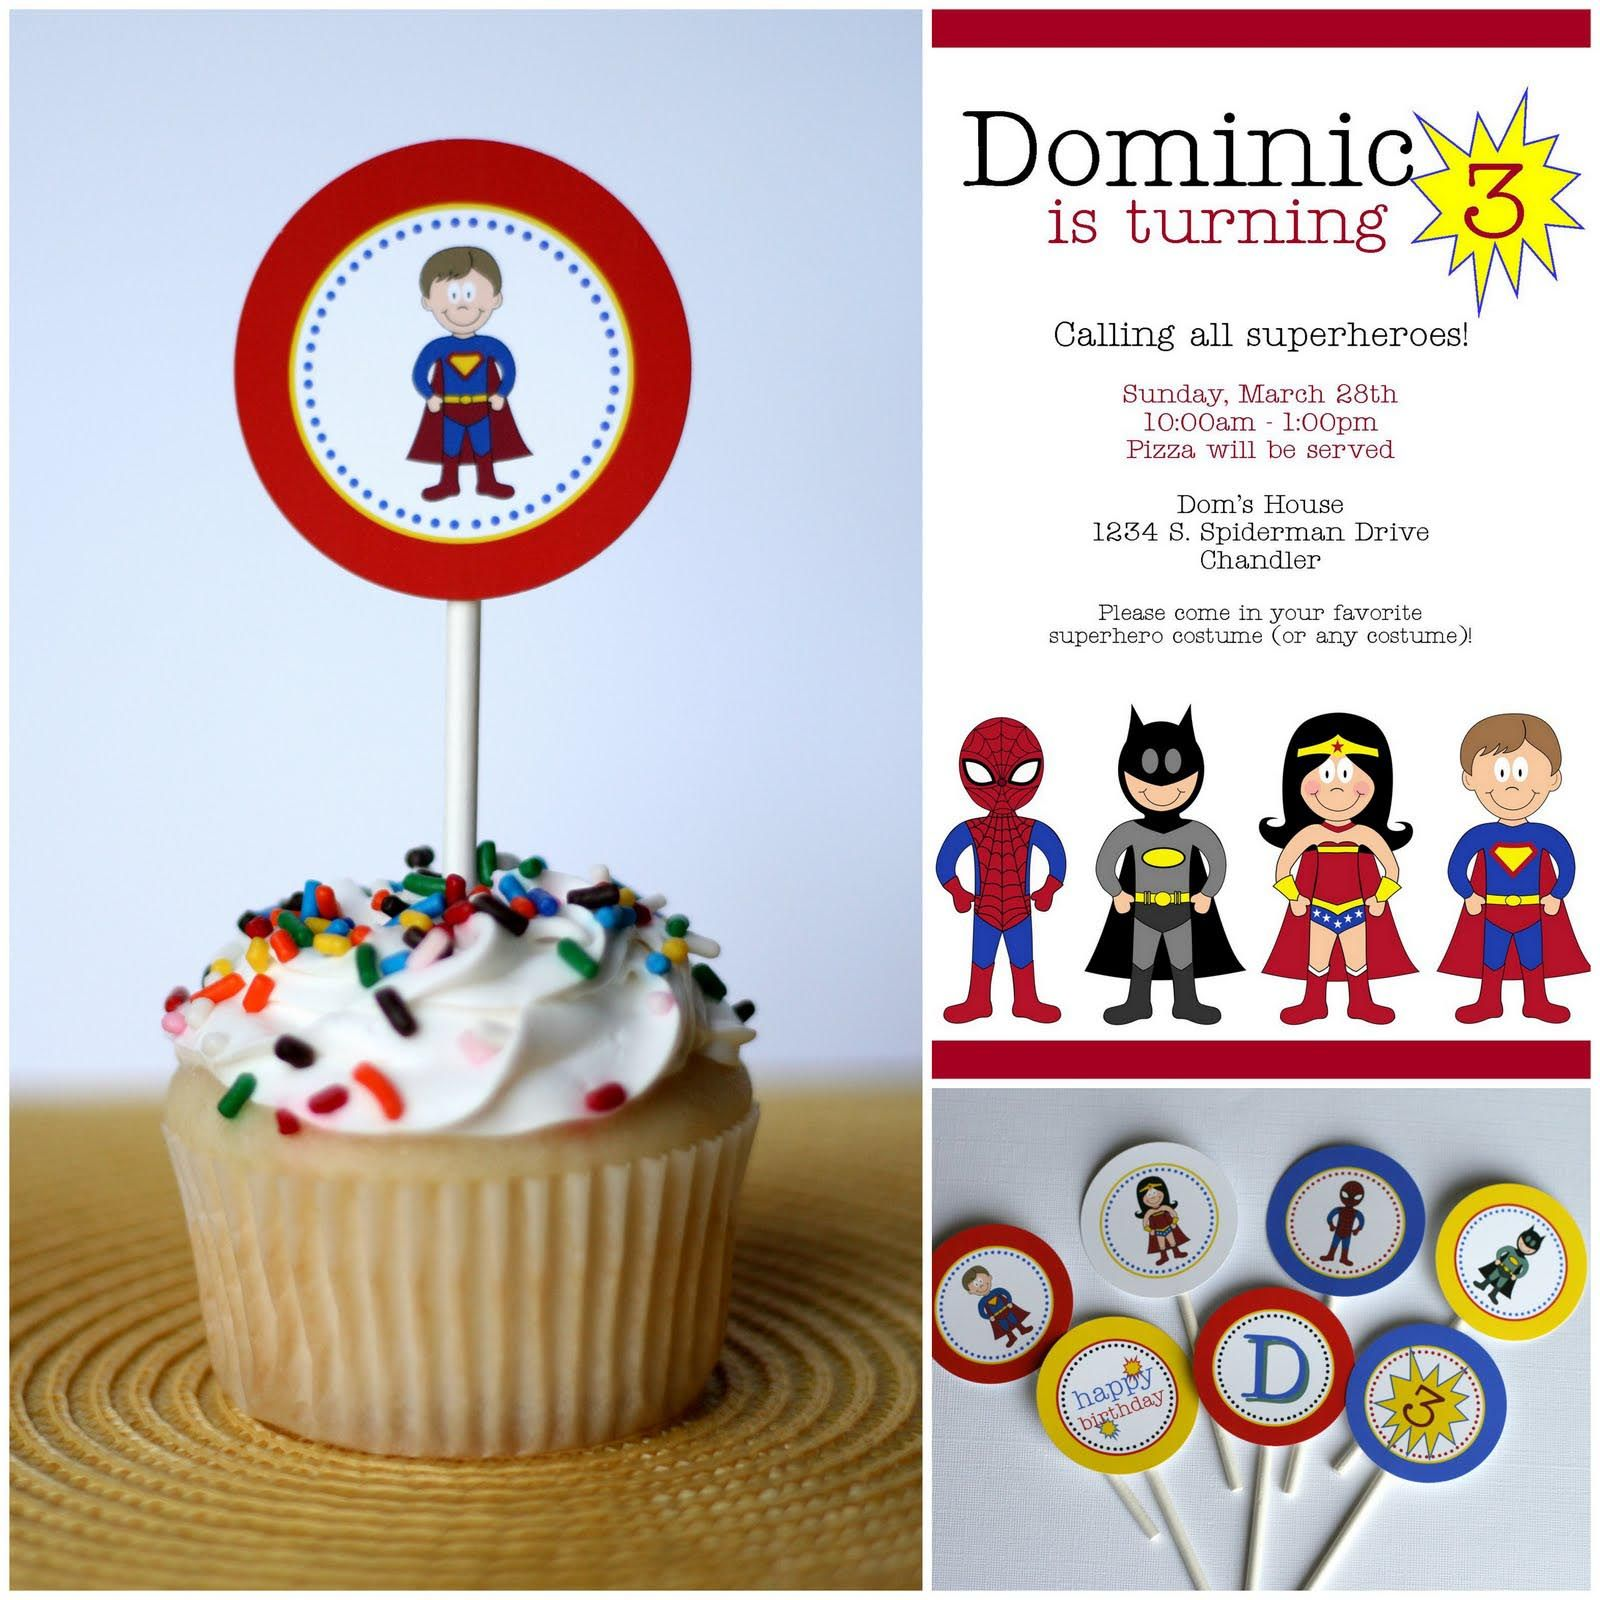 Superhero Birthday Party Invitation Wording | Birthday Party ...